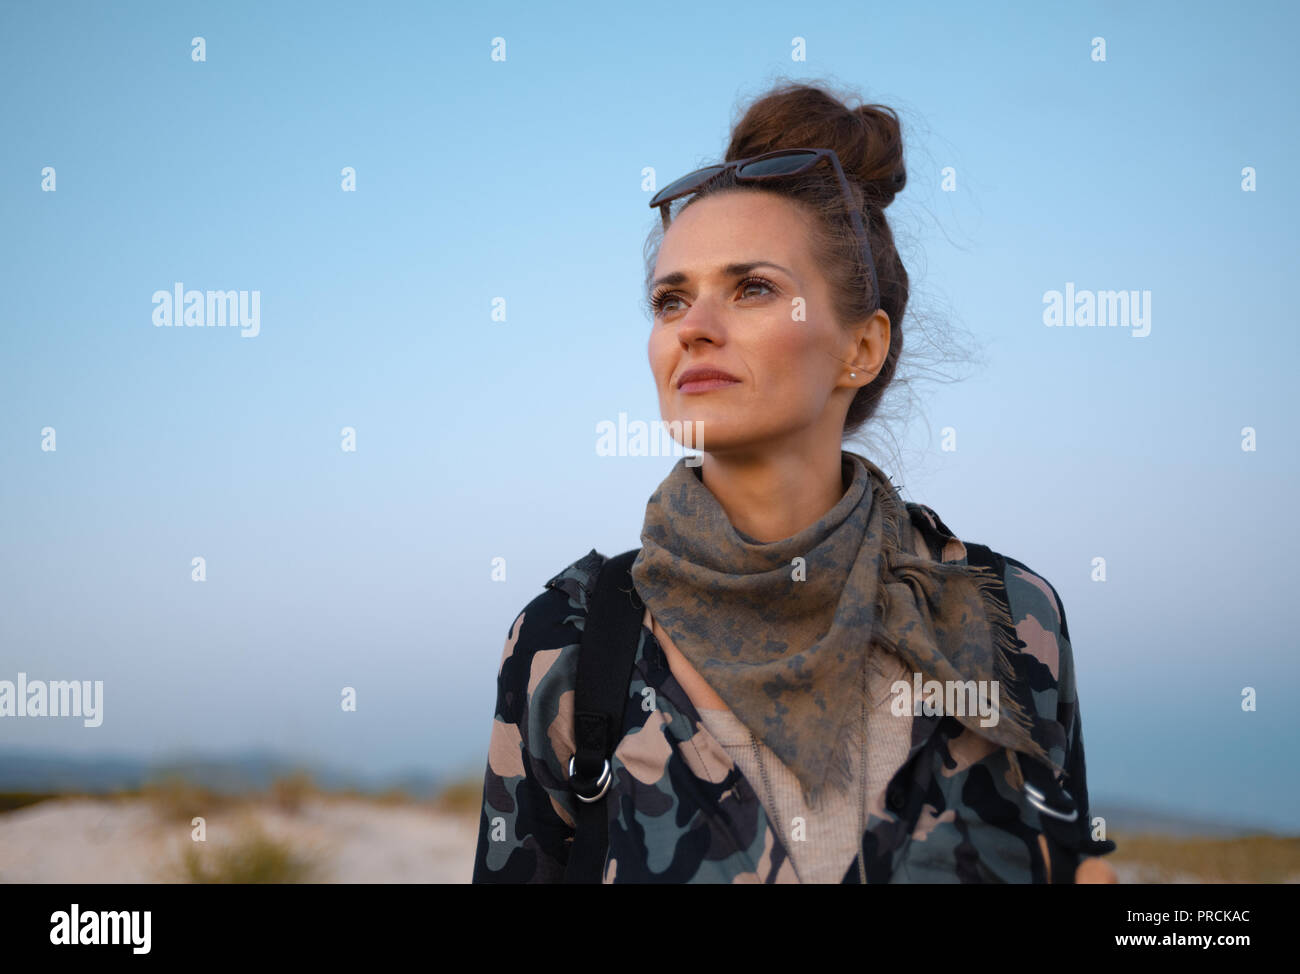 pensive traveller woman looking into the distance against blue sky - Stock Image